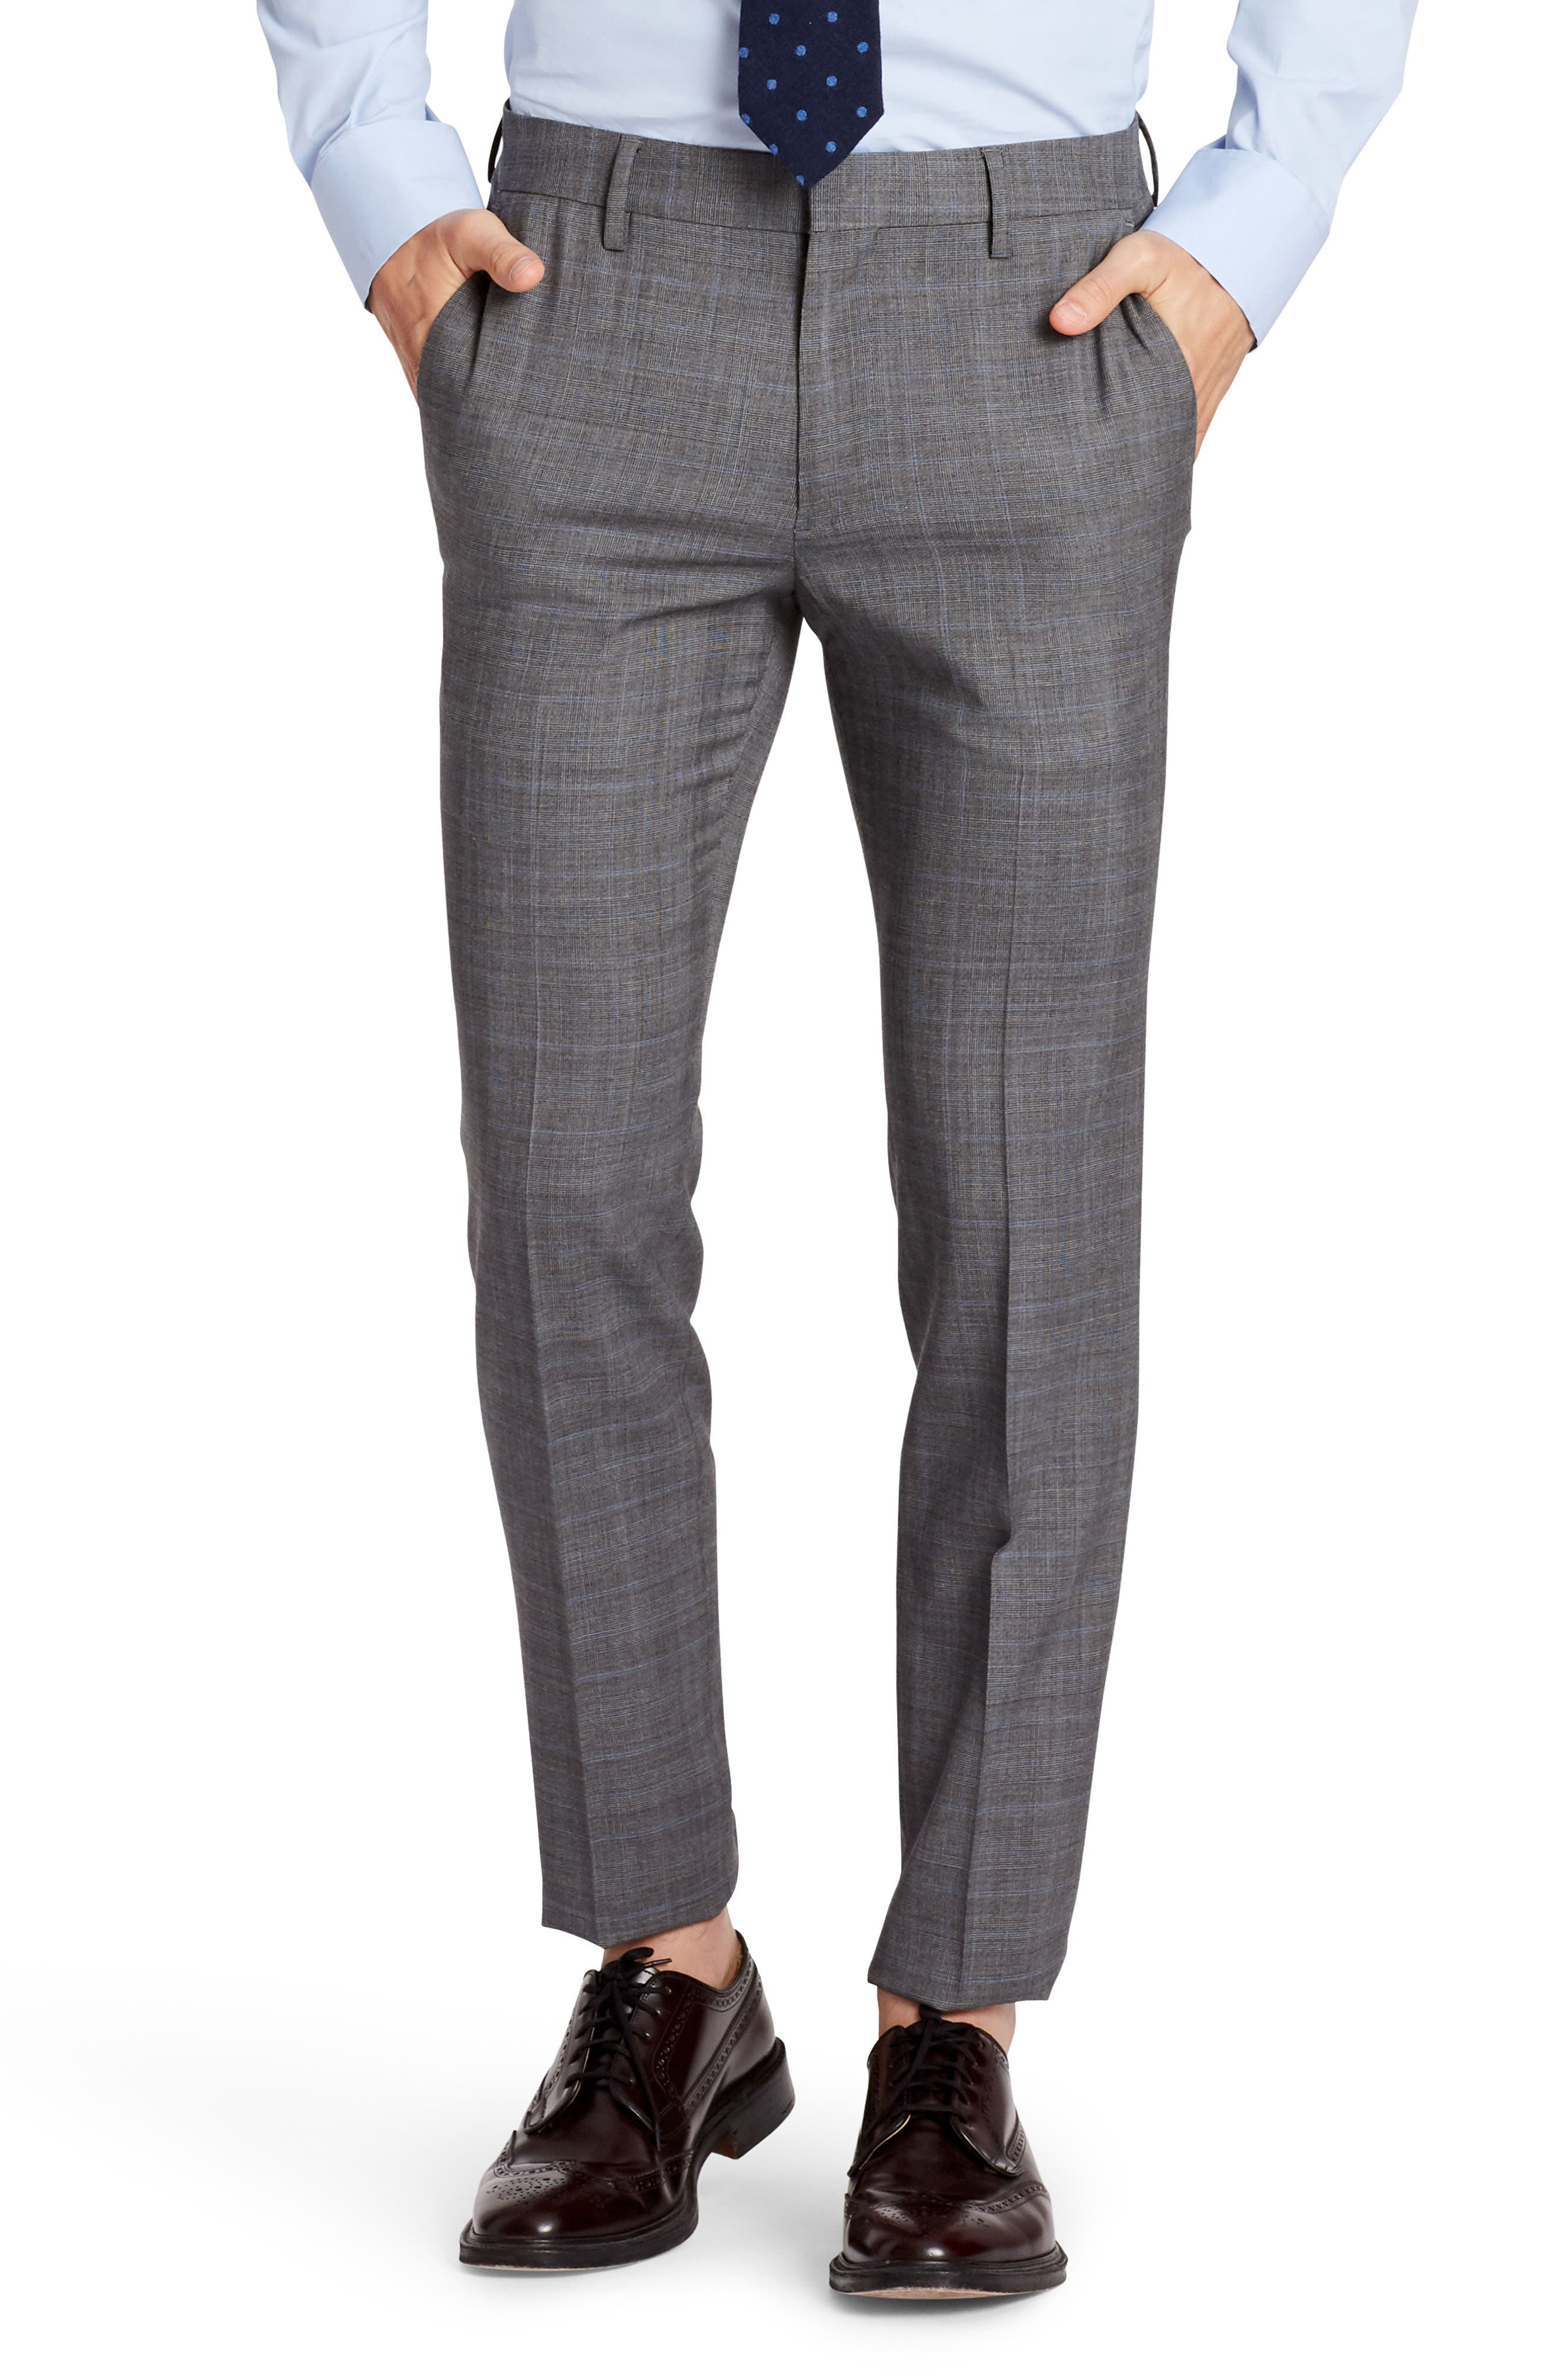 Jetsetter Flat Front Plaid Stretch Wool Trousers,                             Main thumbnail 1, color,                             Mid Grey Glen Plaid